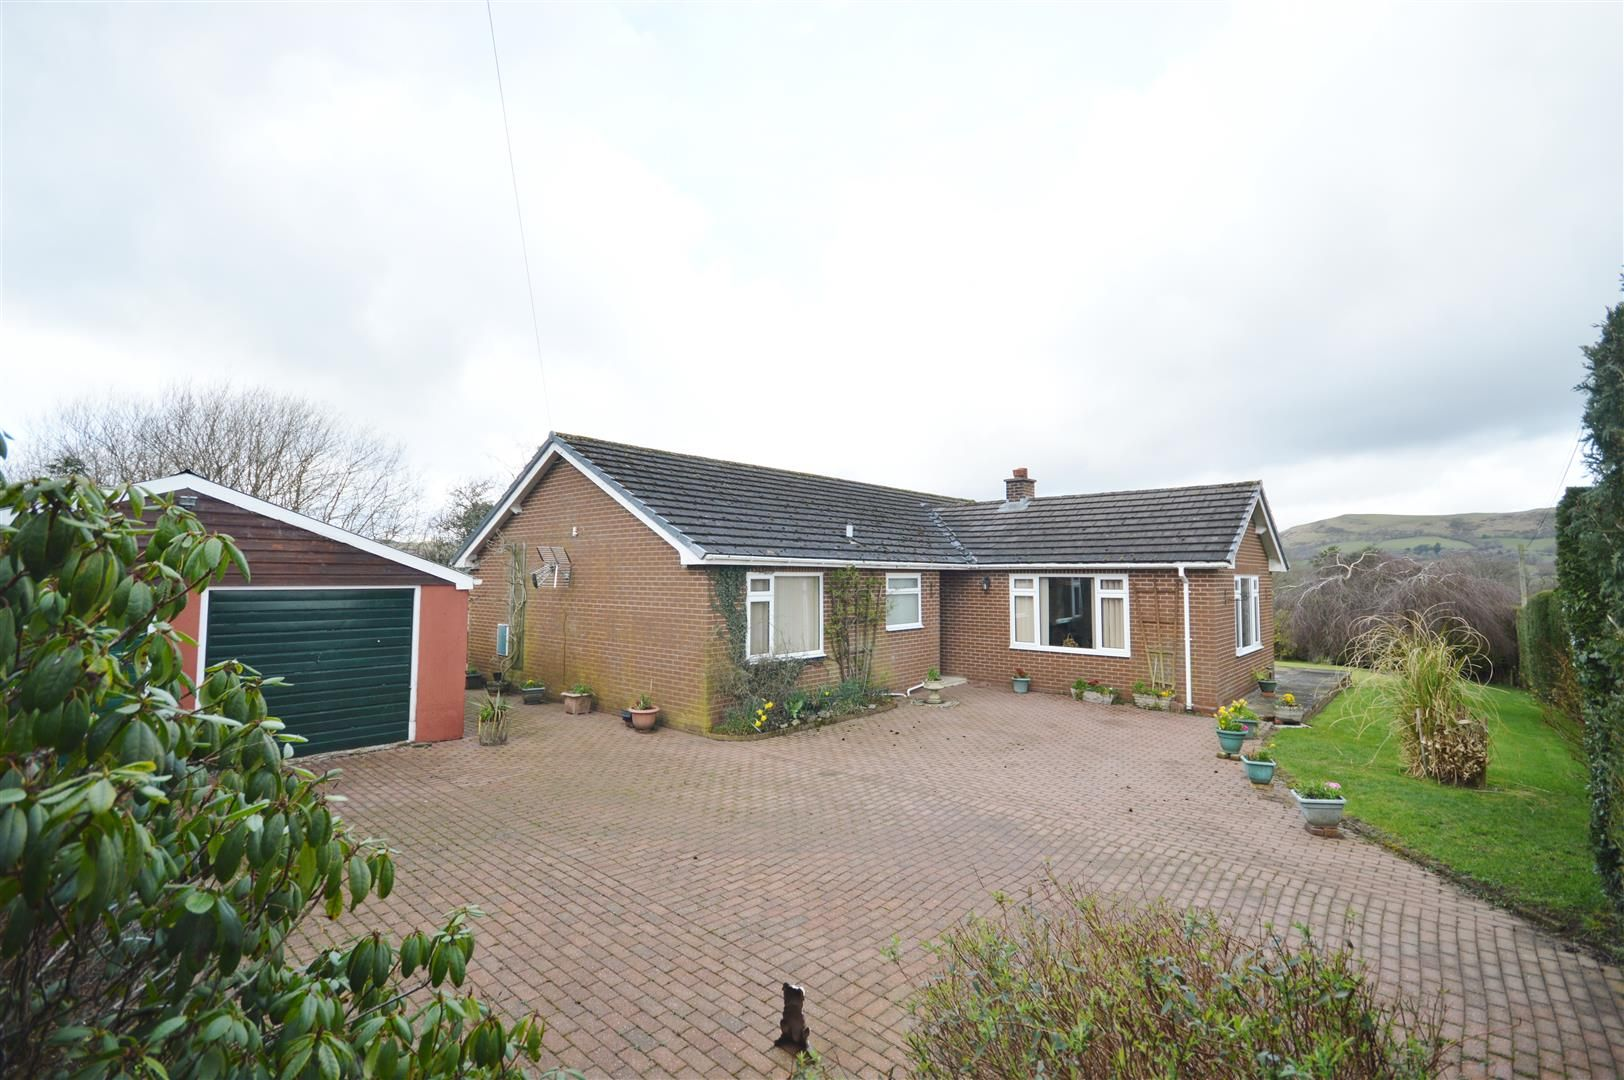 3 bed detached-bungalow for sale in Llandrindod Wells 1